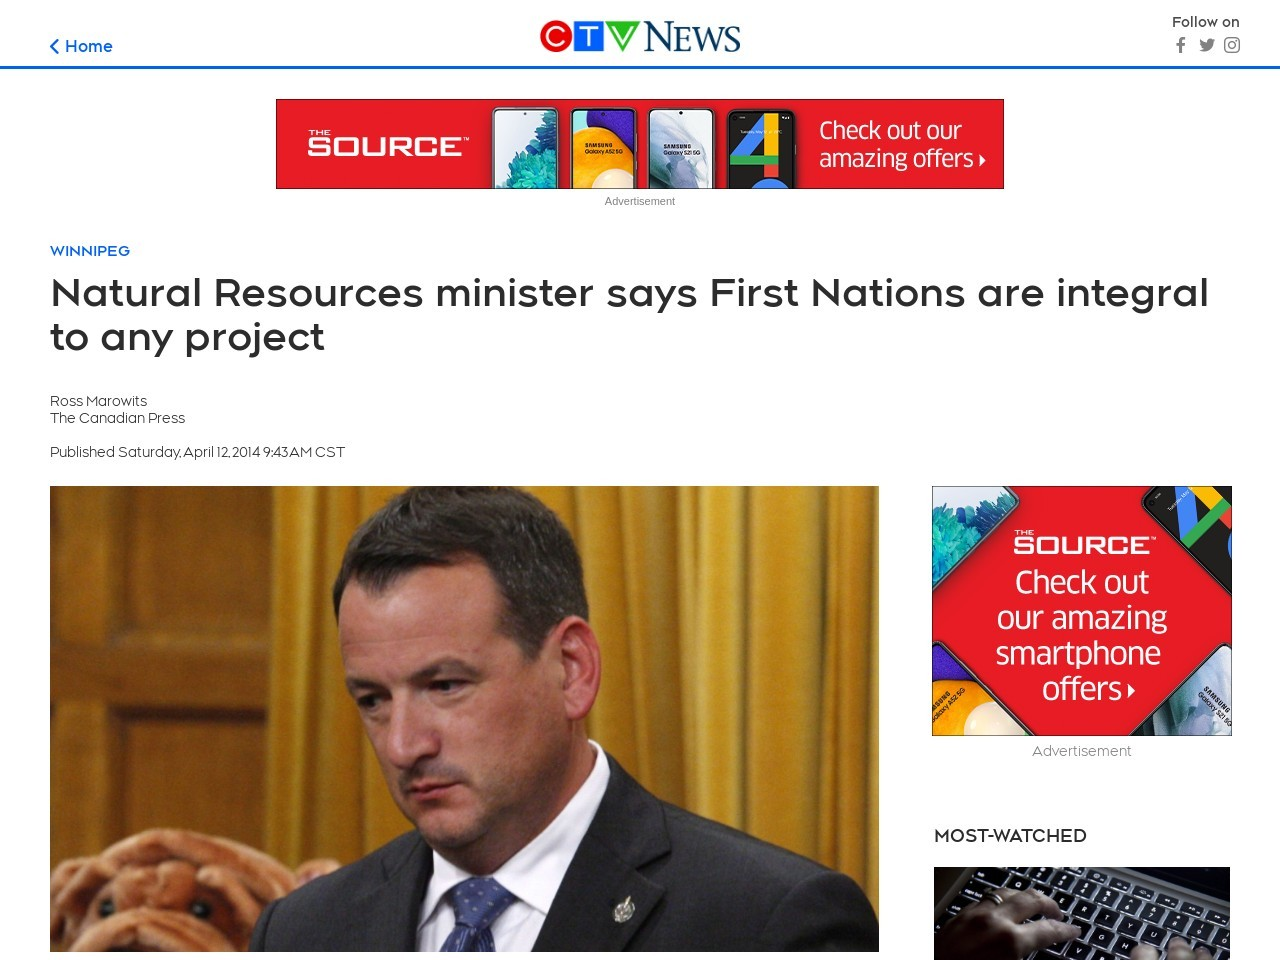 Natural Resources minister says First Nations are integral to any project